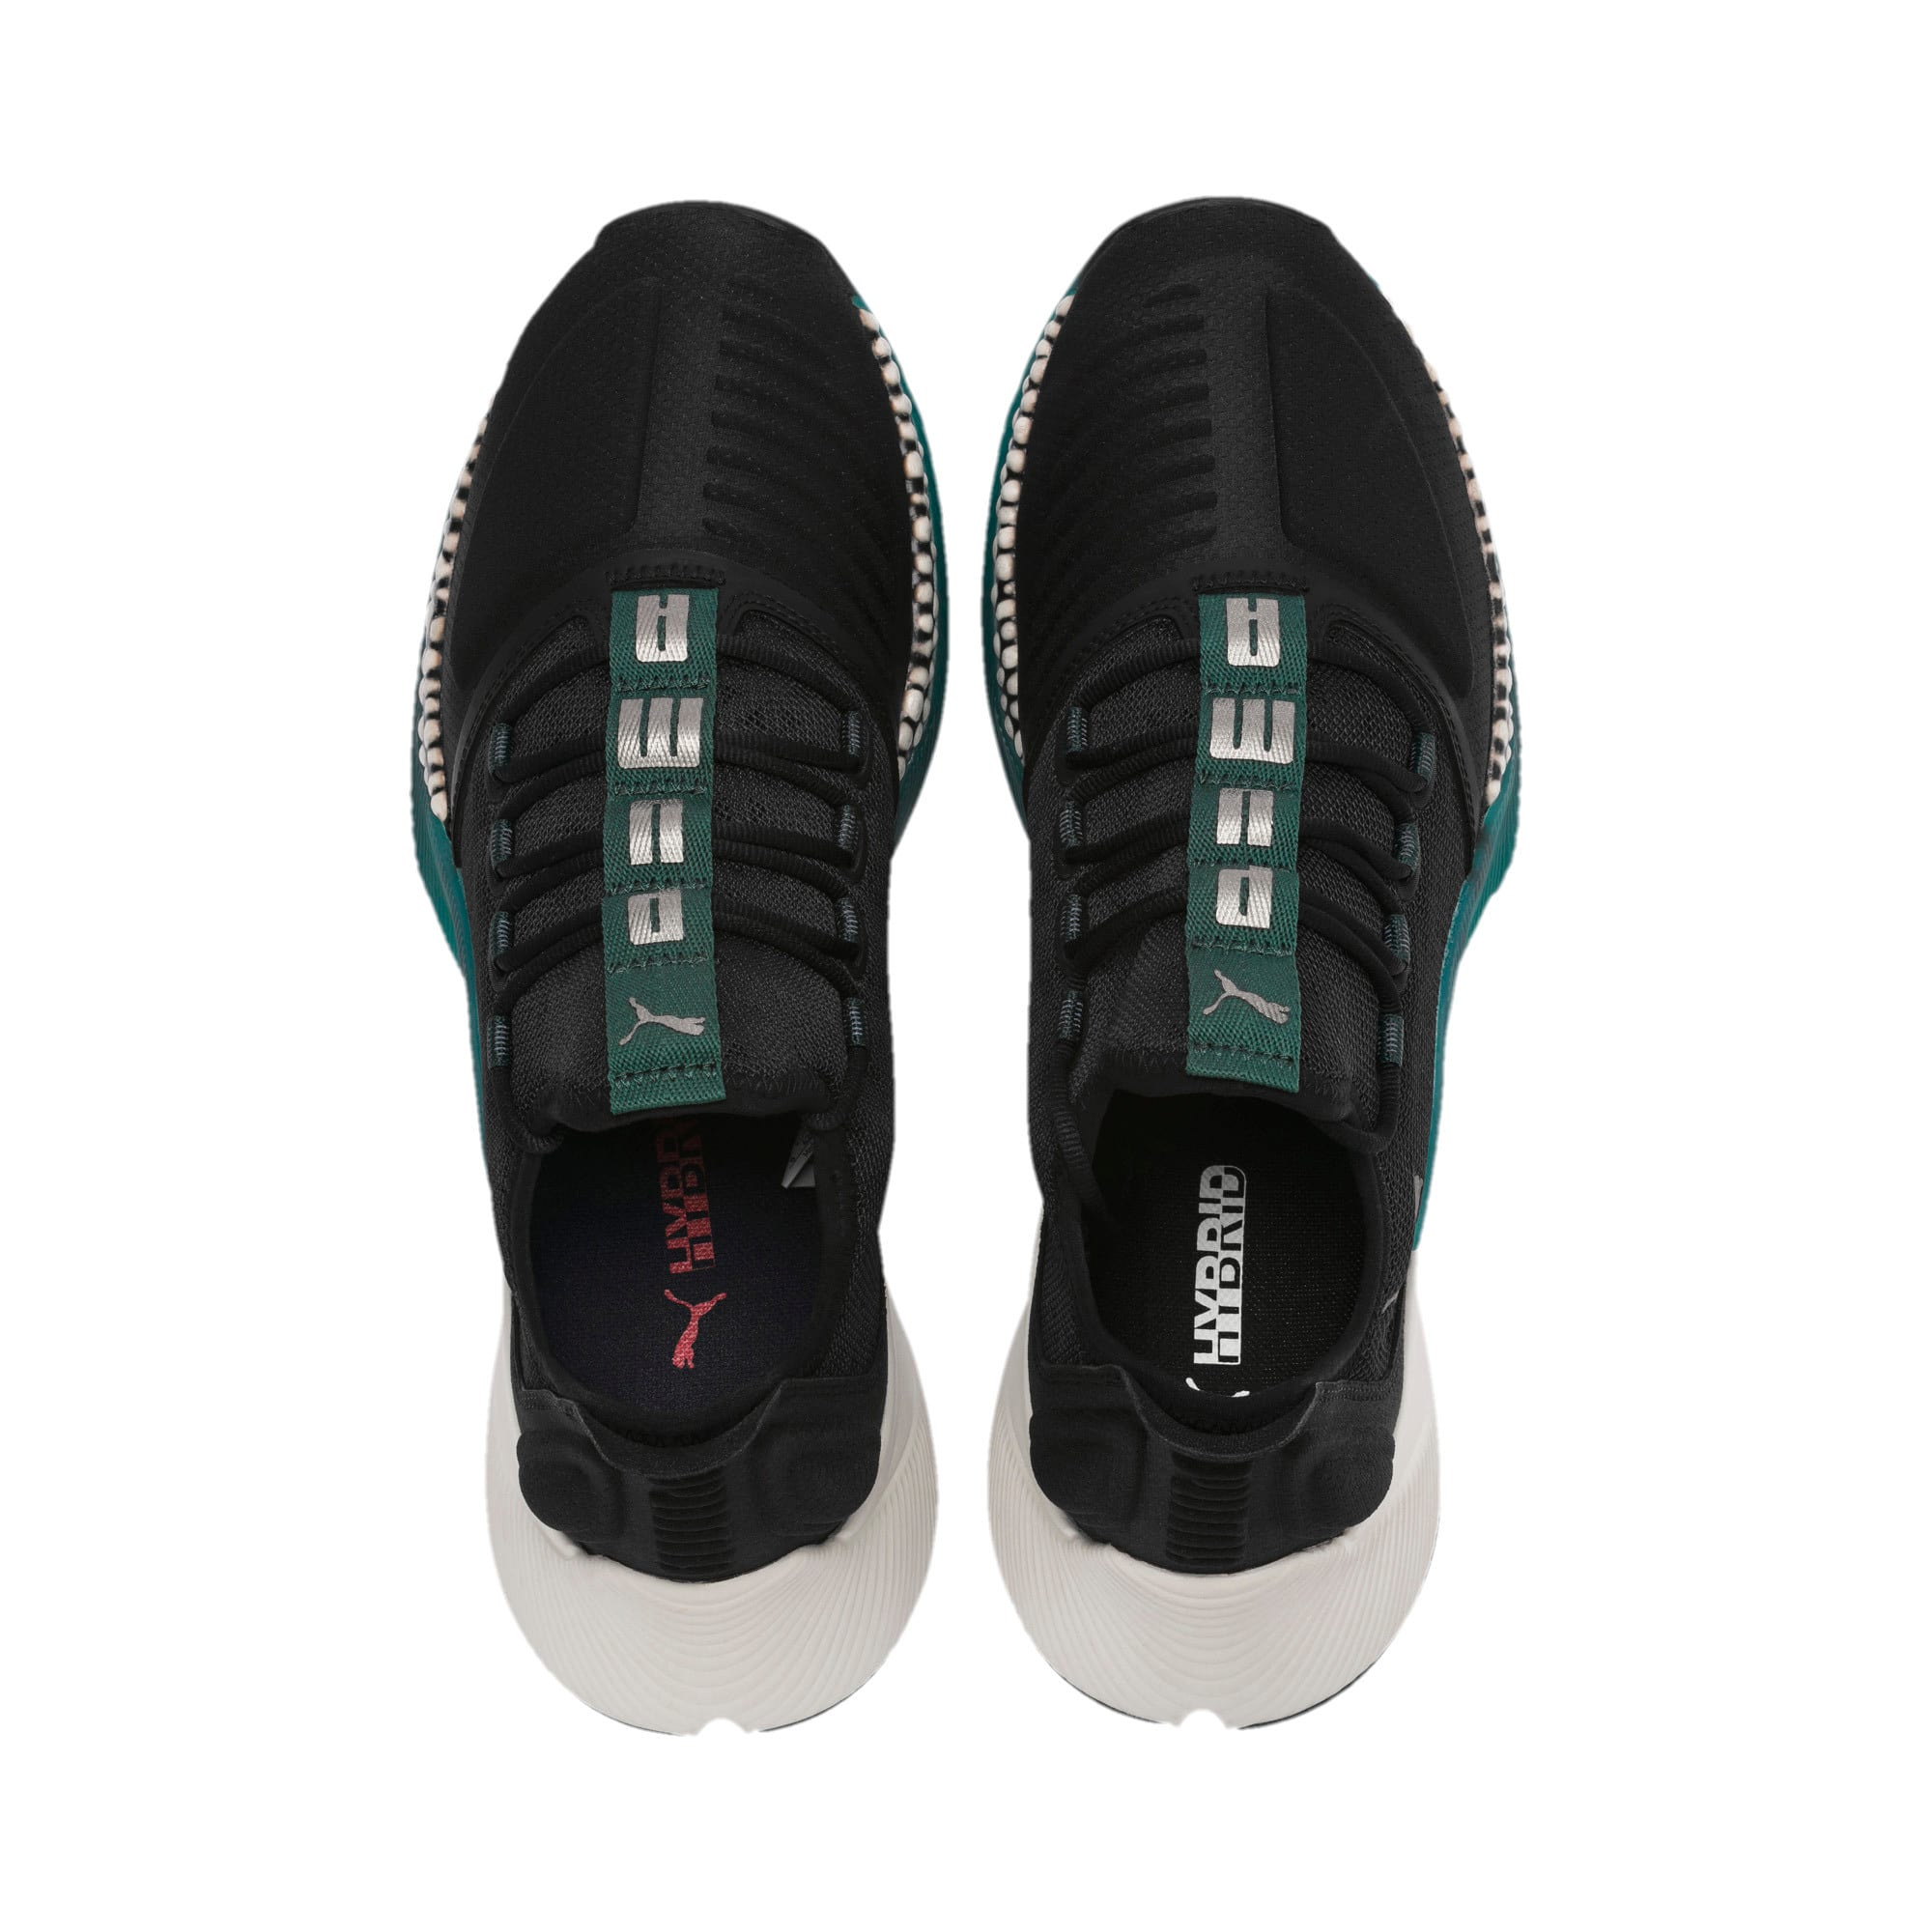 Thumbnail 7 of Chaussure de course Xcelerator, Black-Glacier Gray-Ponderosa, medium